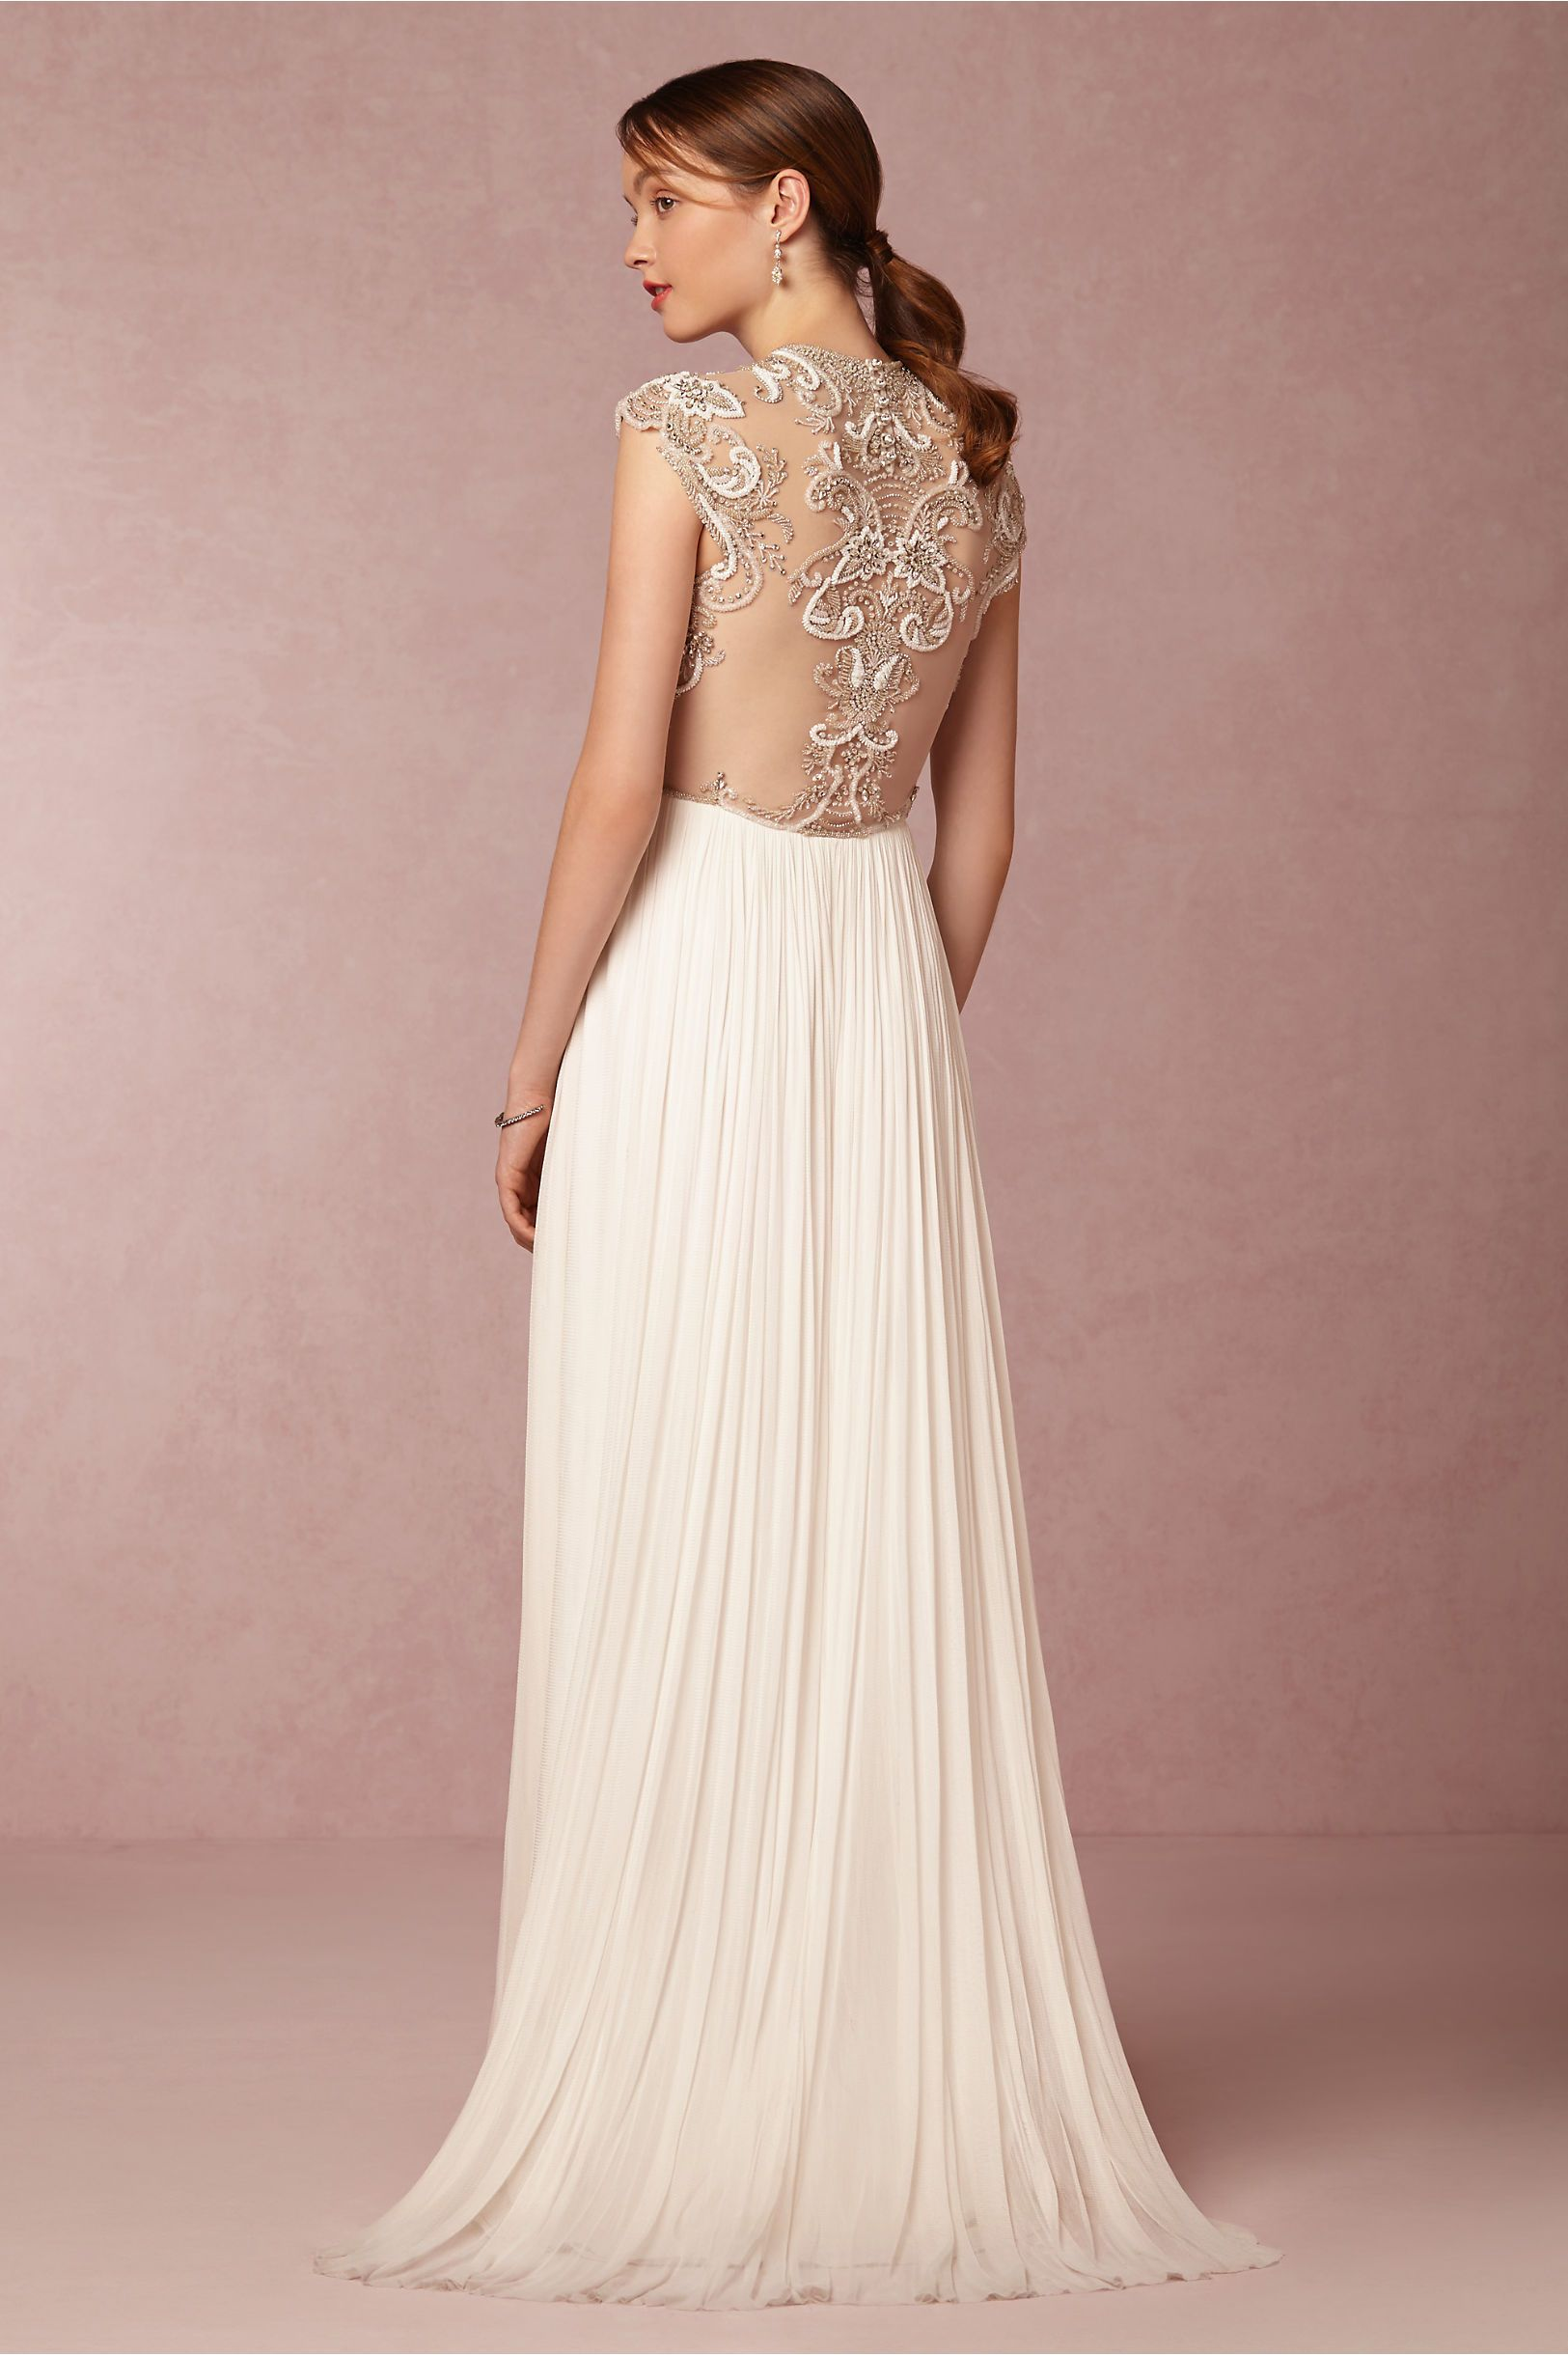 BHLDN\'s Catherine Deane Winnie Gown in Snow | Bellisima